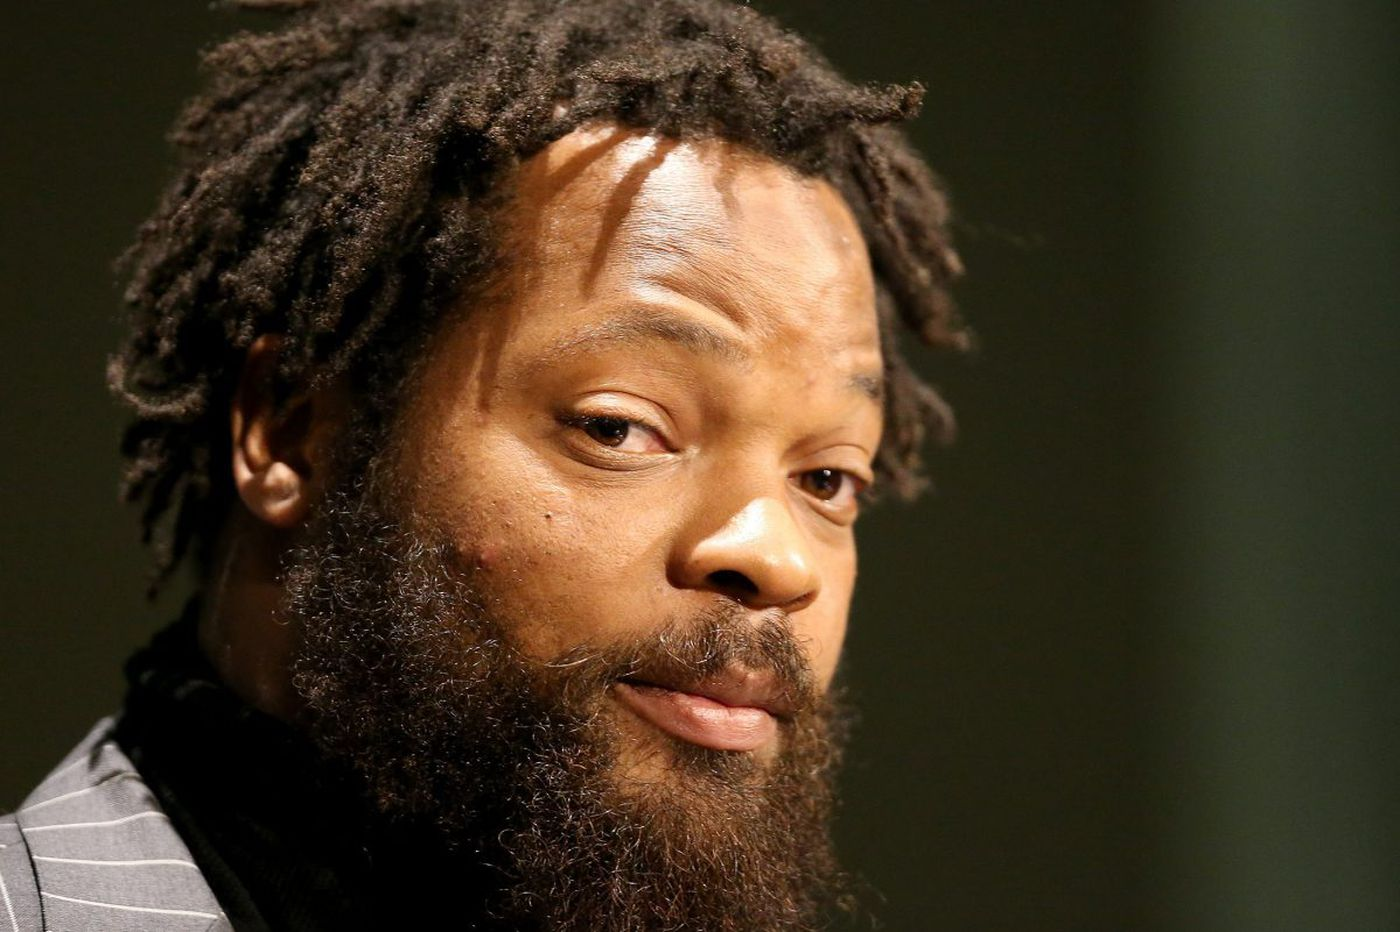 Eagle Michael Bennett's new book, 'Things that Make White People Uncomfortable' may do just that | Jenice Armstrong